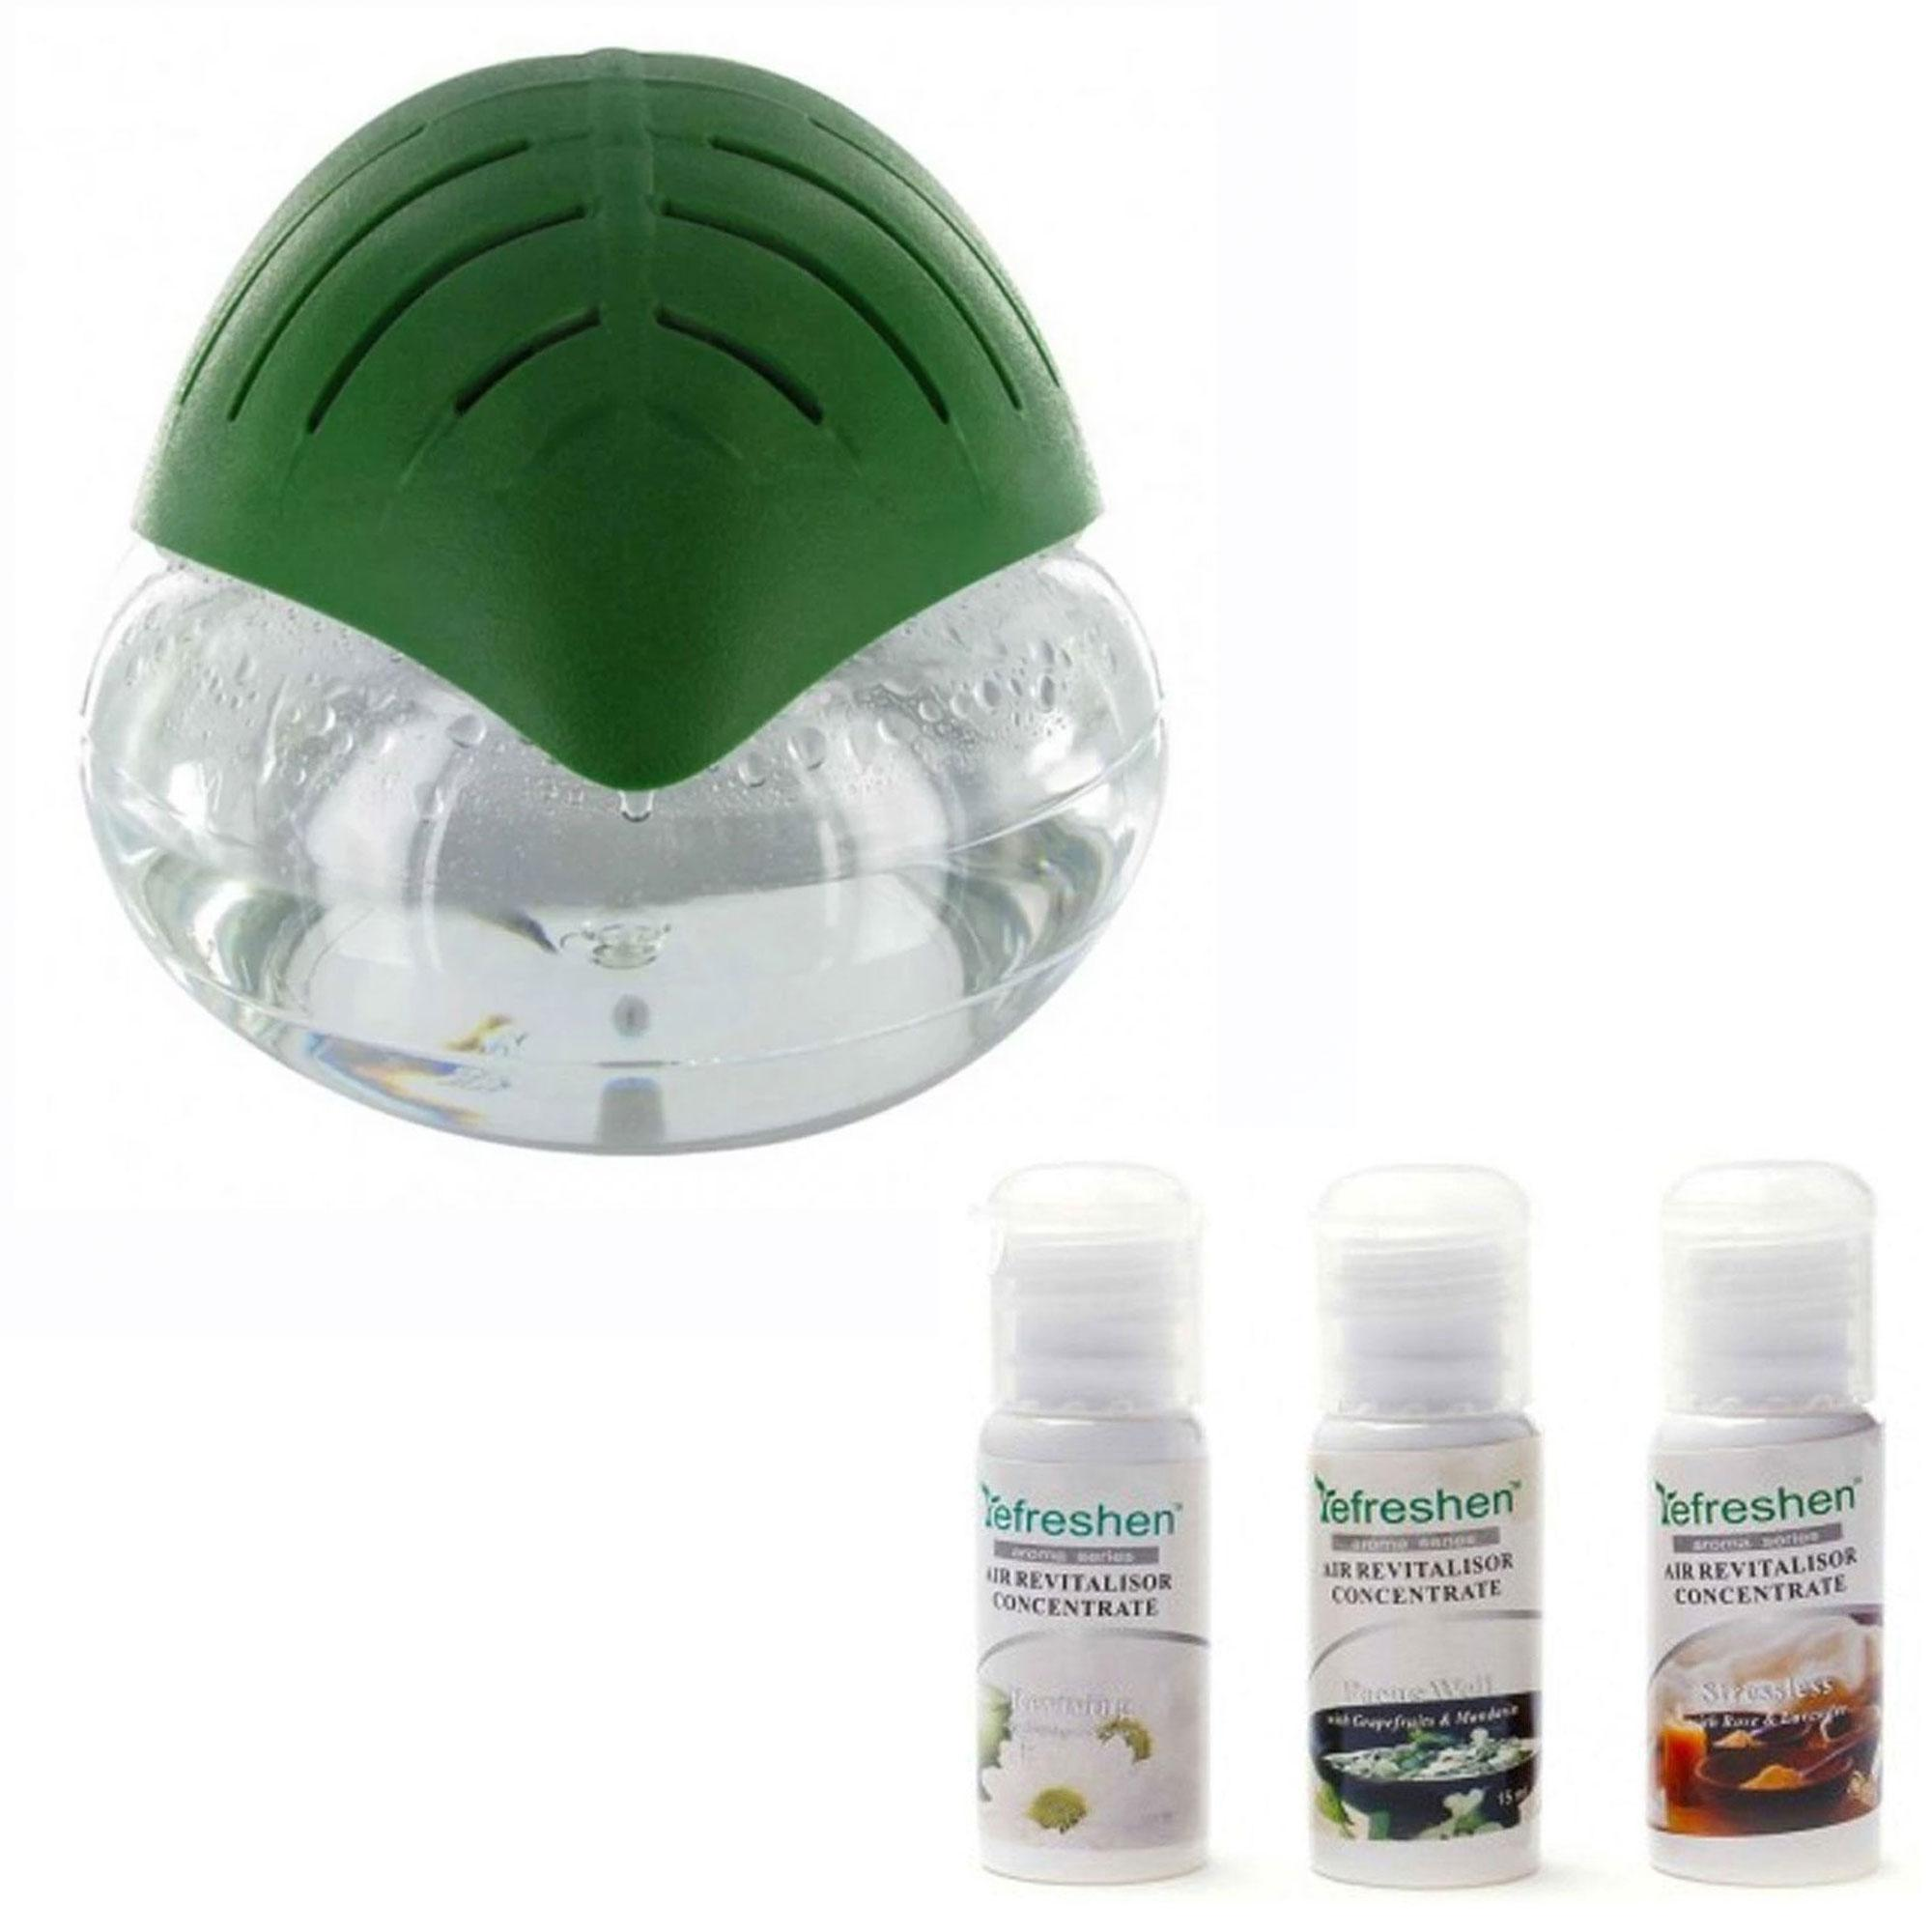 H2o+air Humidifier Purifier And Revitalizer With Led Light (green) With Free Humidifier Scent Starter Kits Spa Series Set By Gonzalez General Merchandise.